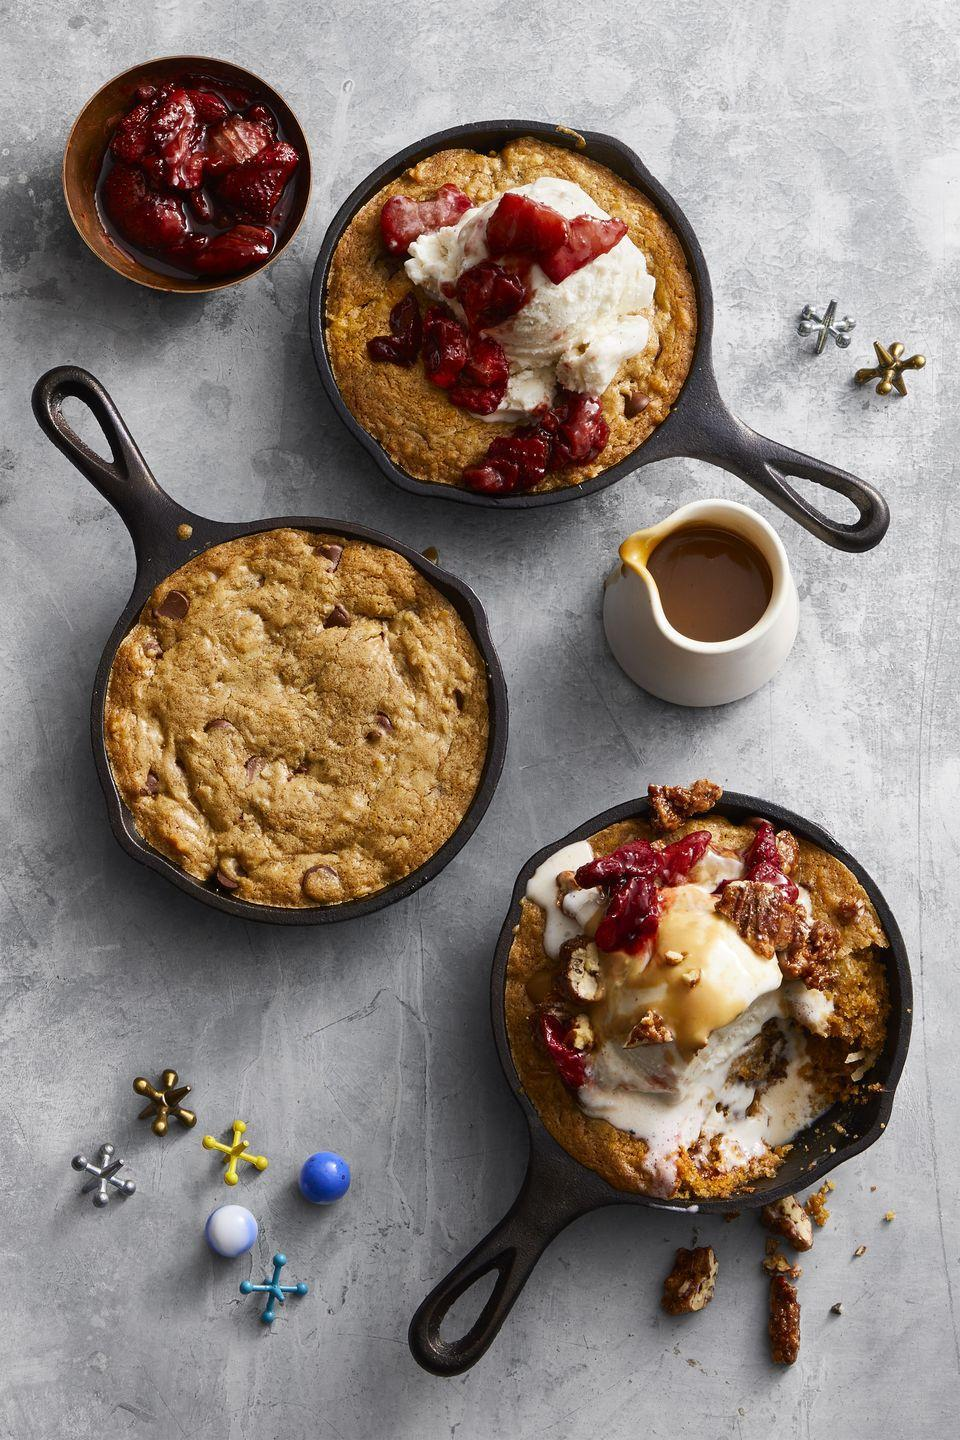 "<p>This warm and melty chocolate chip skillet cookie is customizable for the ultimate fall dessert for a crowd. We'll be topping ours with candied pecans and miso caramel, thank you.</p><p><em><a href=""https://www.goodhousekeeping.com/food-recipes/dessert/a47671/skillet-cookie-sundaes-recipe/"" rel=""nofollow noopener"" target=""_blank"" data-ylk=""slk:Get the recipe for Skillet Cookie Sundaes »"" class=""link rapid-noclick-resp"">Get the recipe for Skillet Cookie Sundaes »</a></em> </p>"